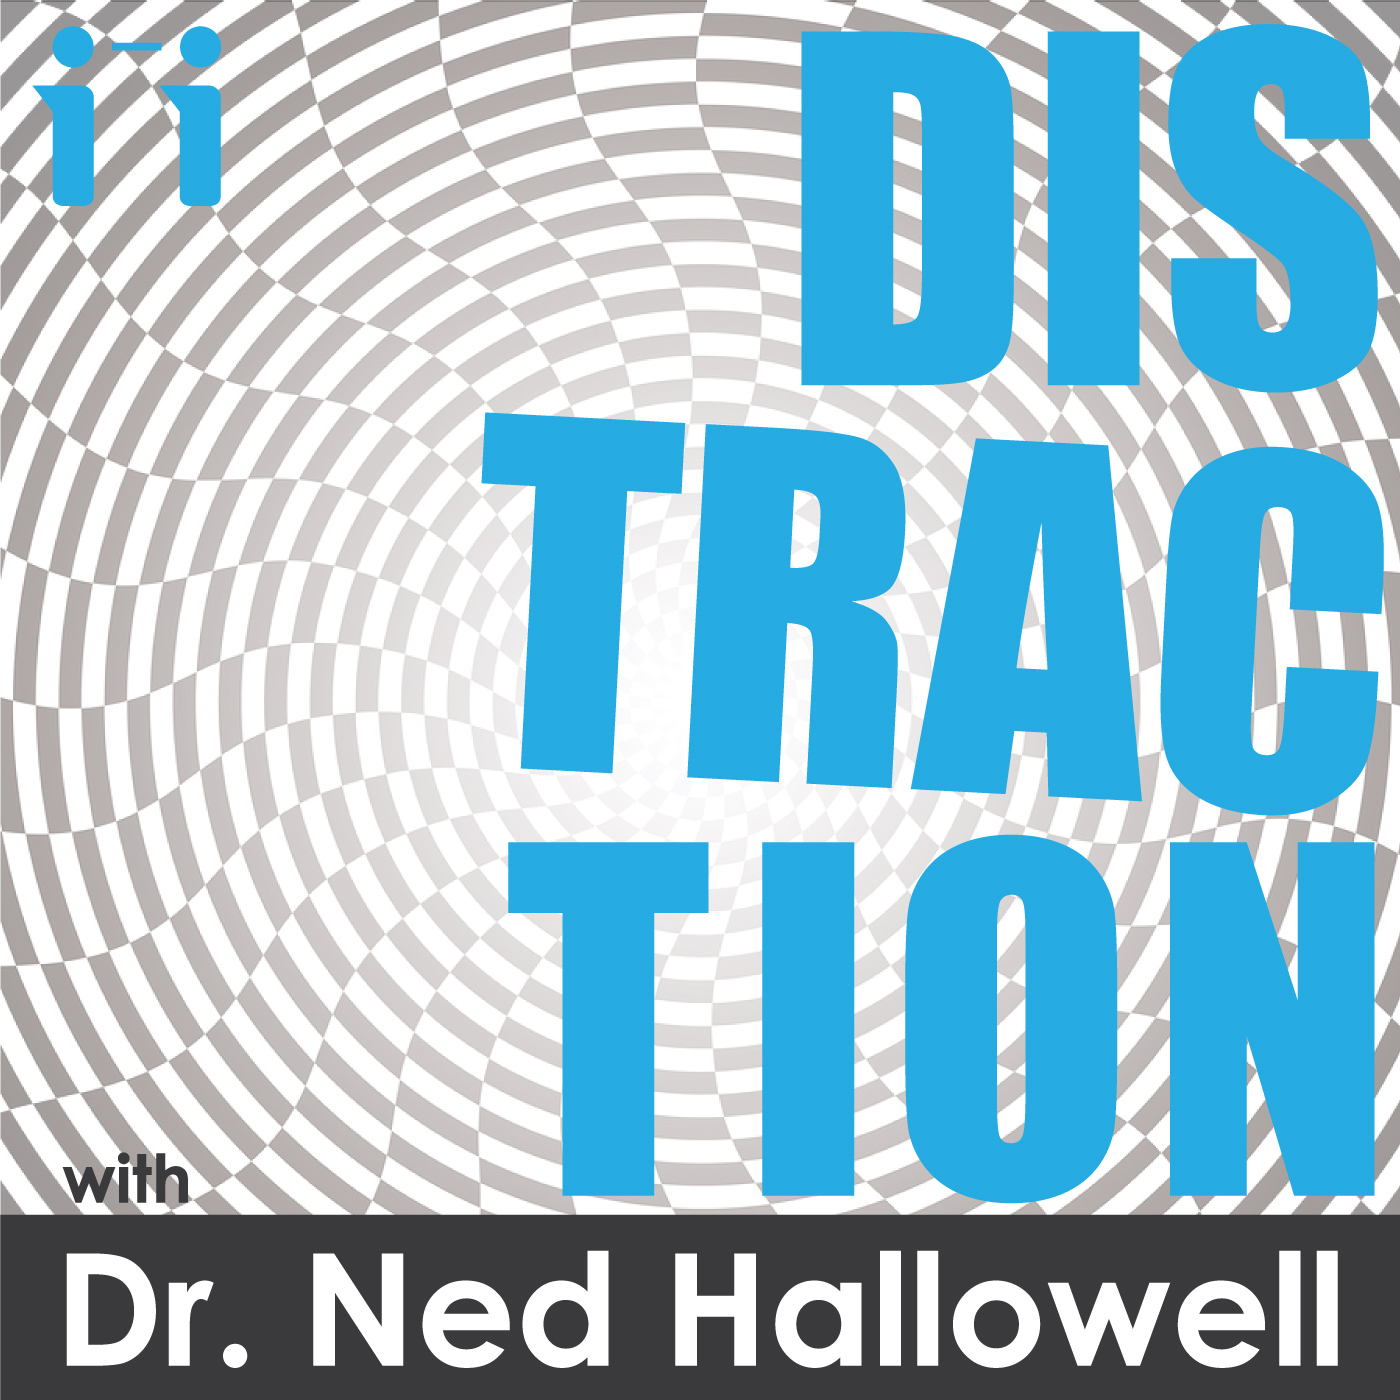 Distraction with Dr. Ned Hallowell show art